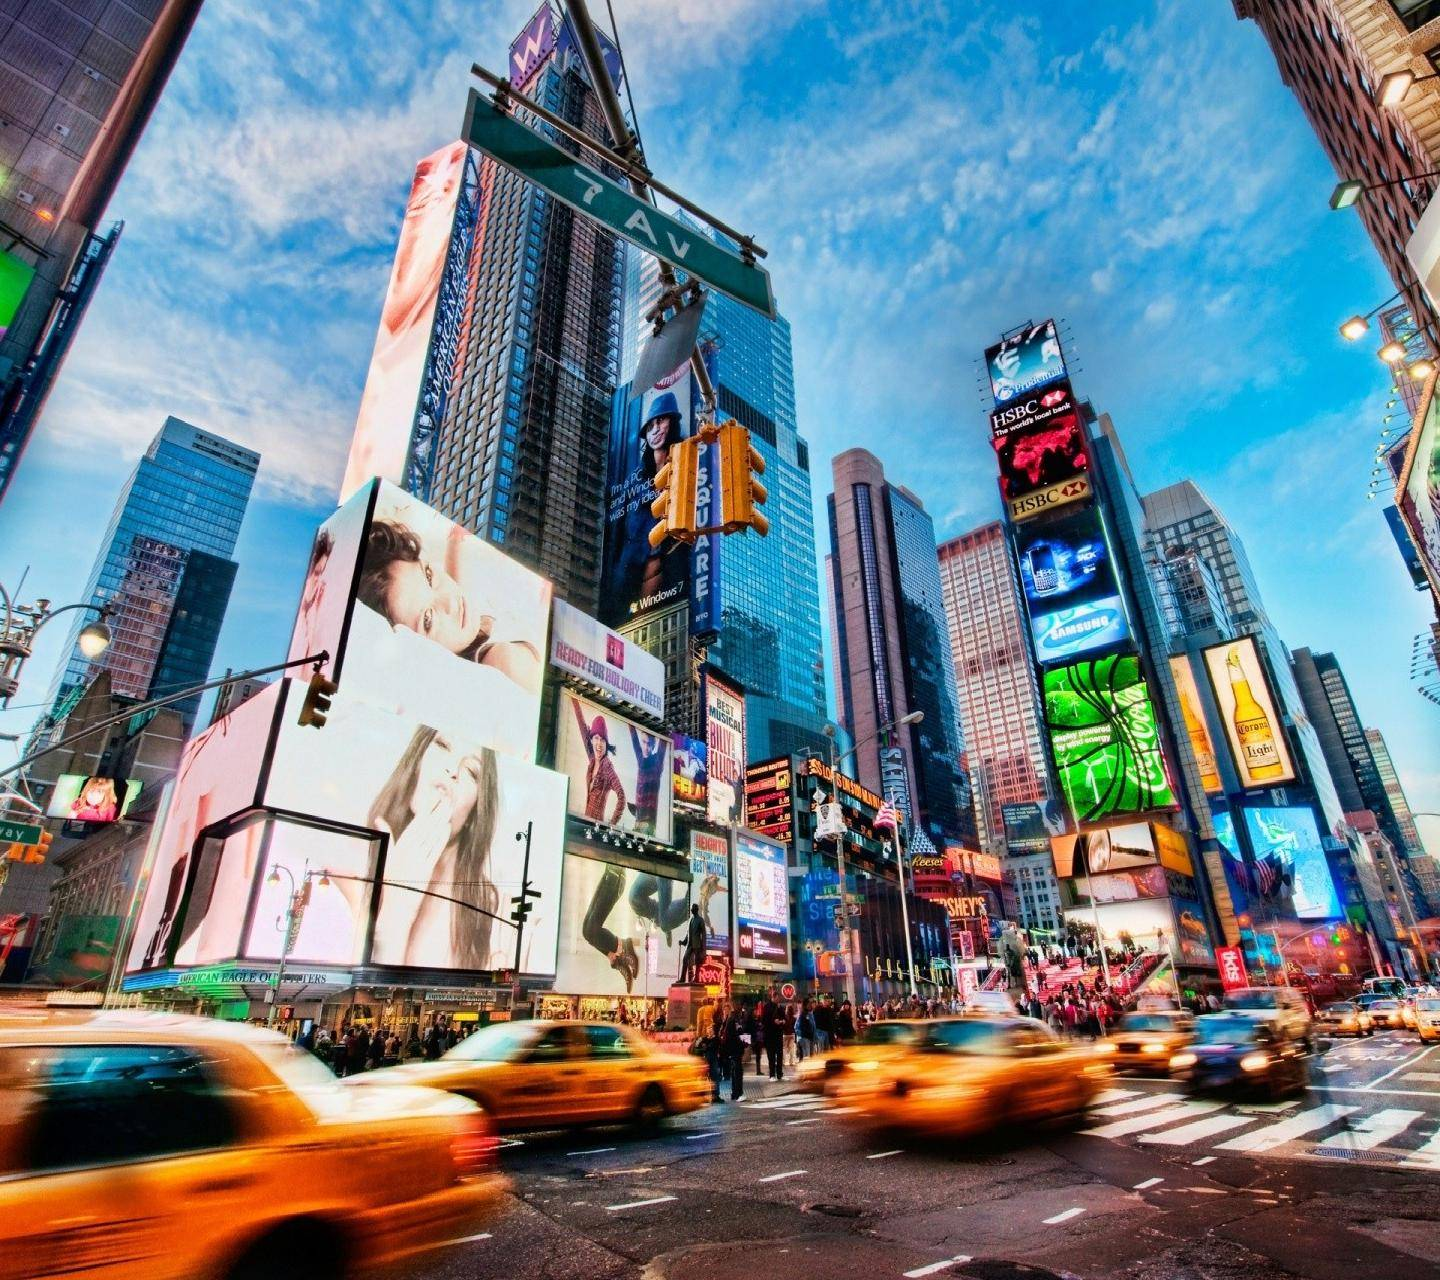 New York Time Square Wallpaper By Rohan Desai A9 Free On Zedge